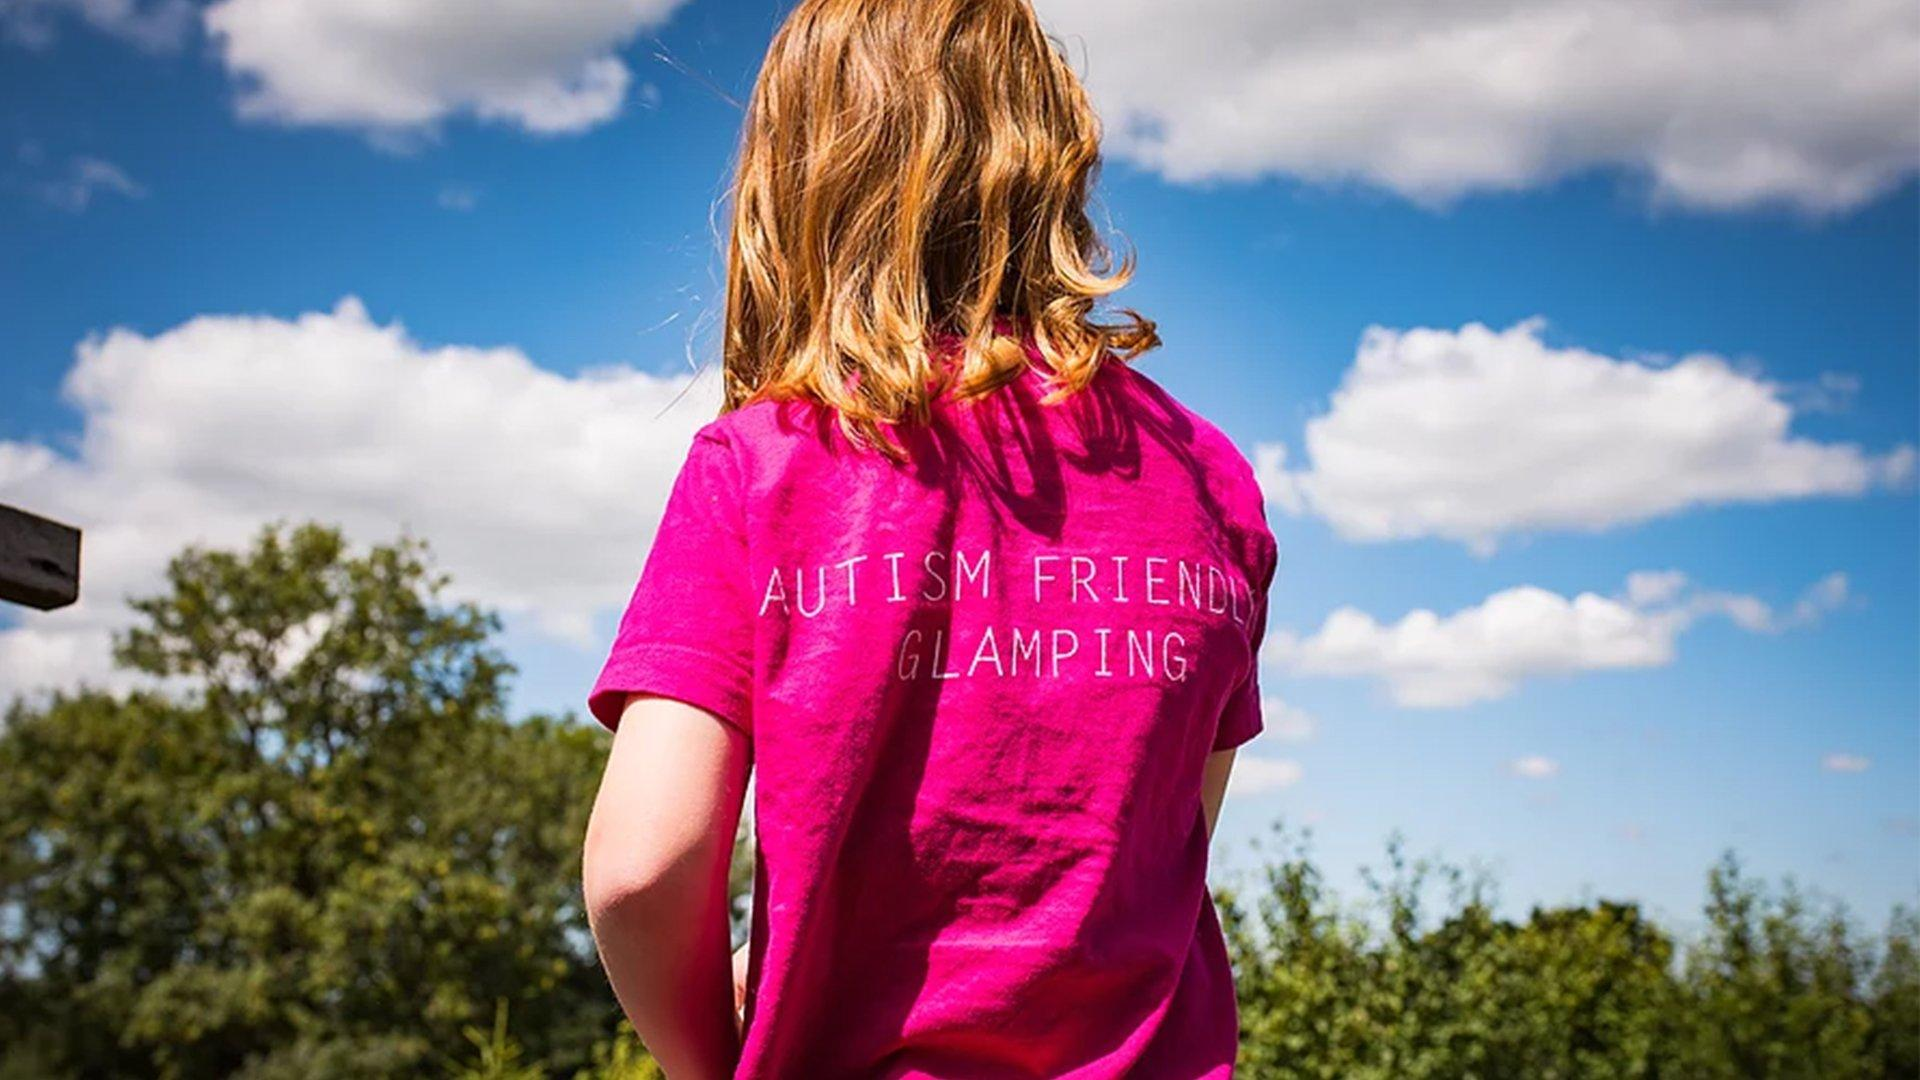 Image of a child wearing a t-shirt that promotes autism friendly camping at Leafy Fields Campsite